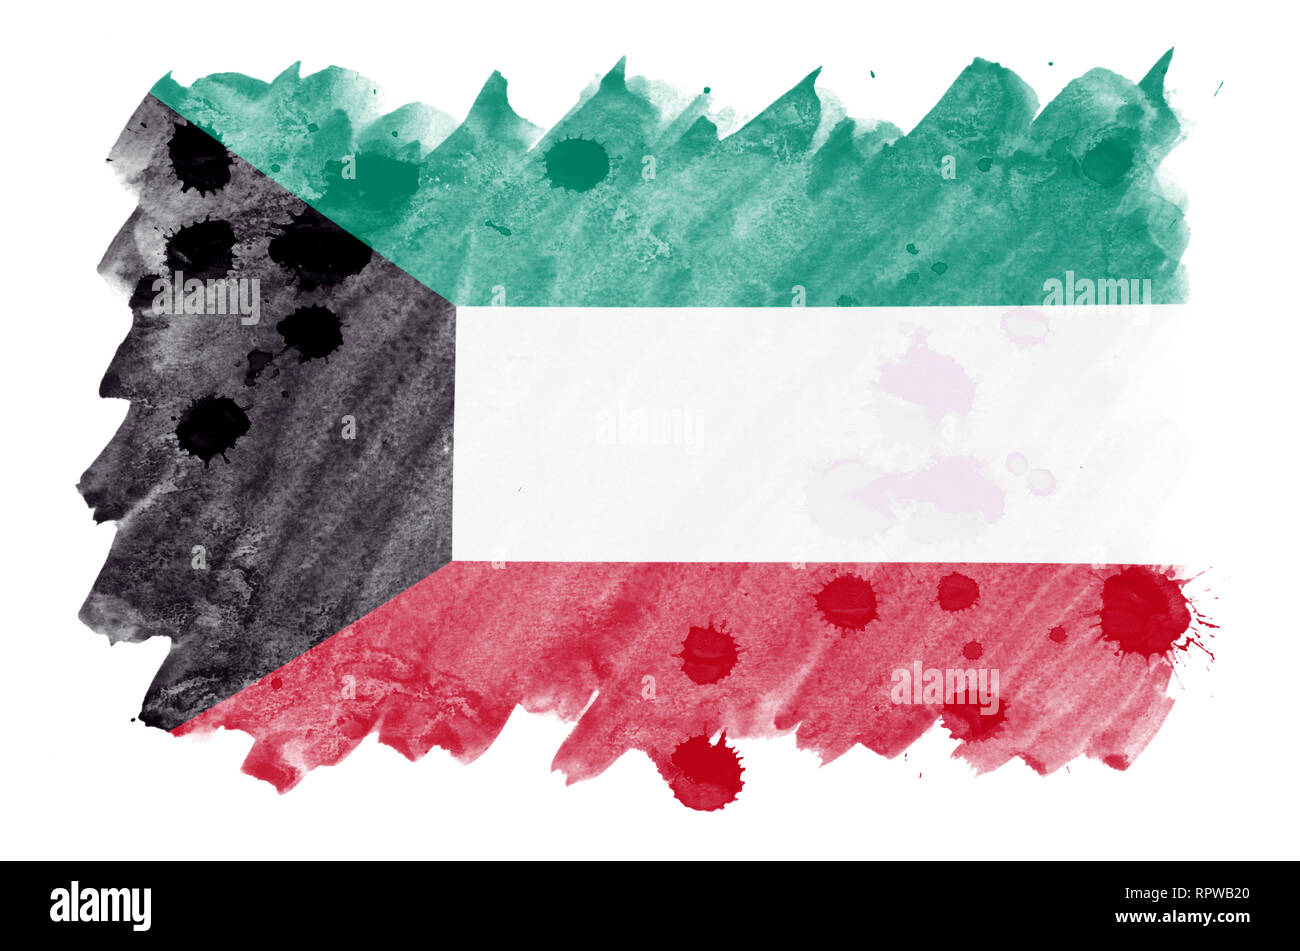 Kuwait Culture Cut Out Stock Images & Pictures - Alamy